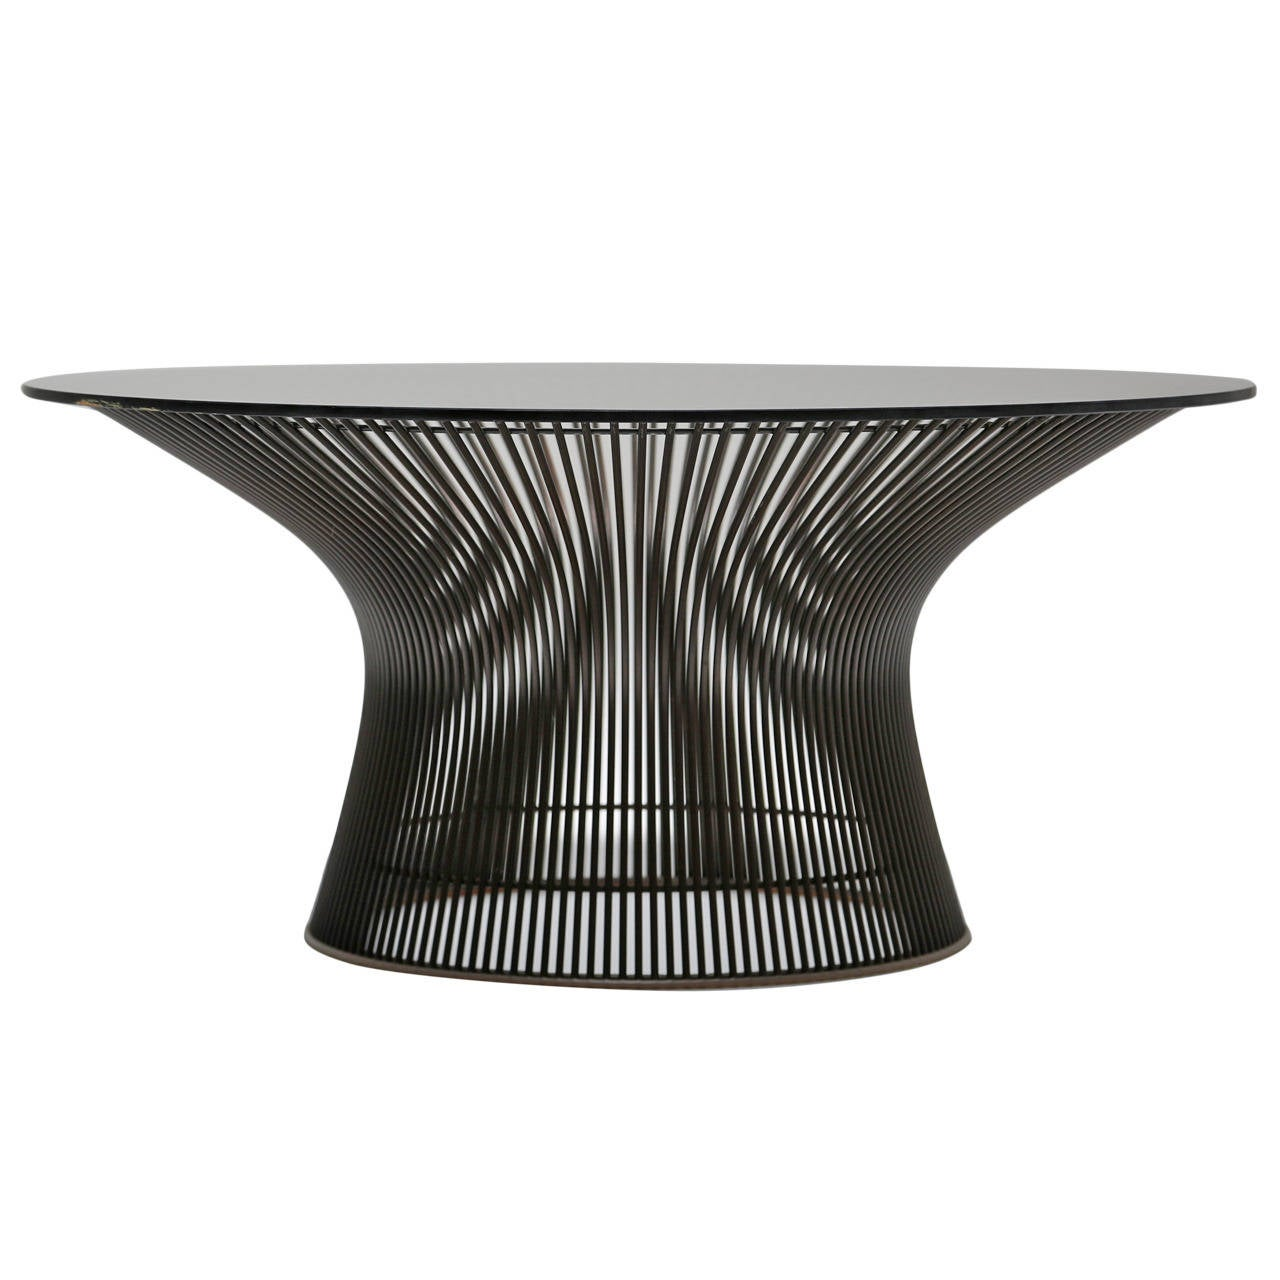 Bronze Warren Platner Coffee Table for Knoll International at 1stdibs